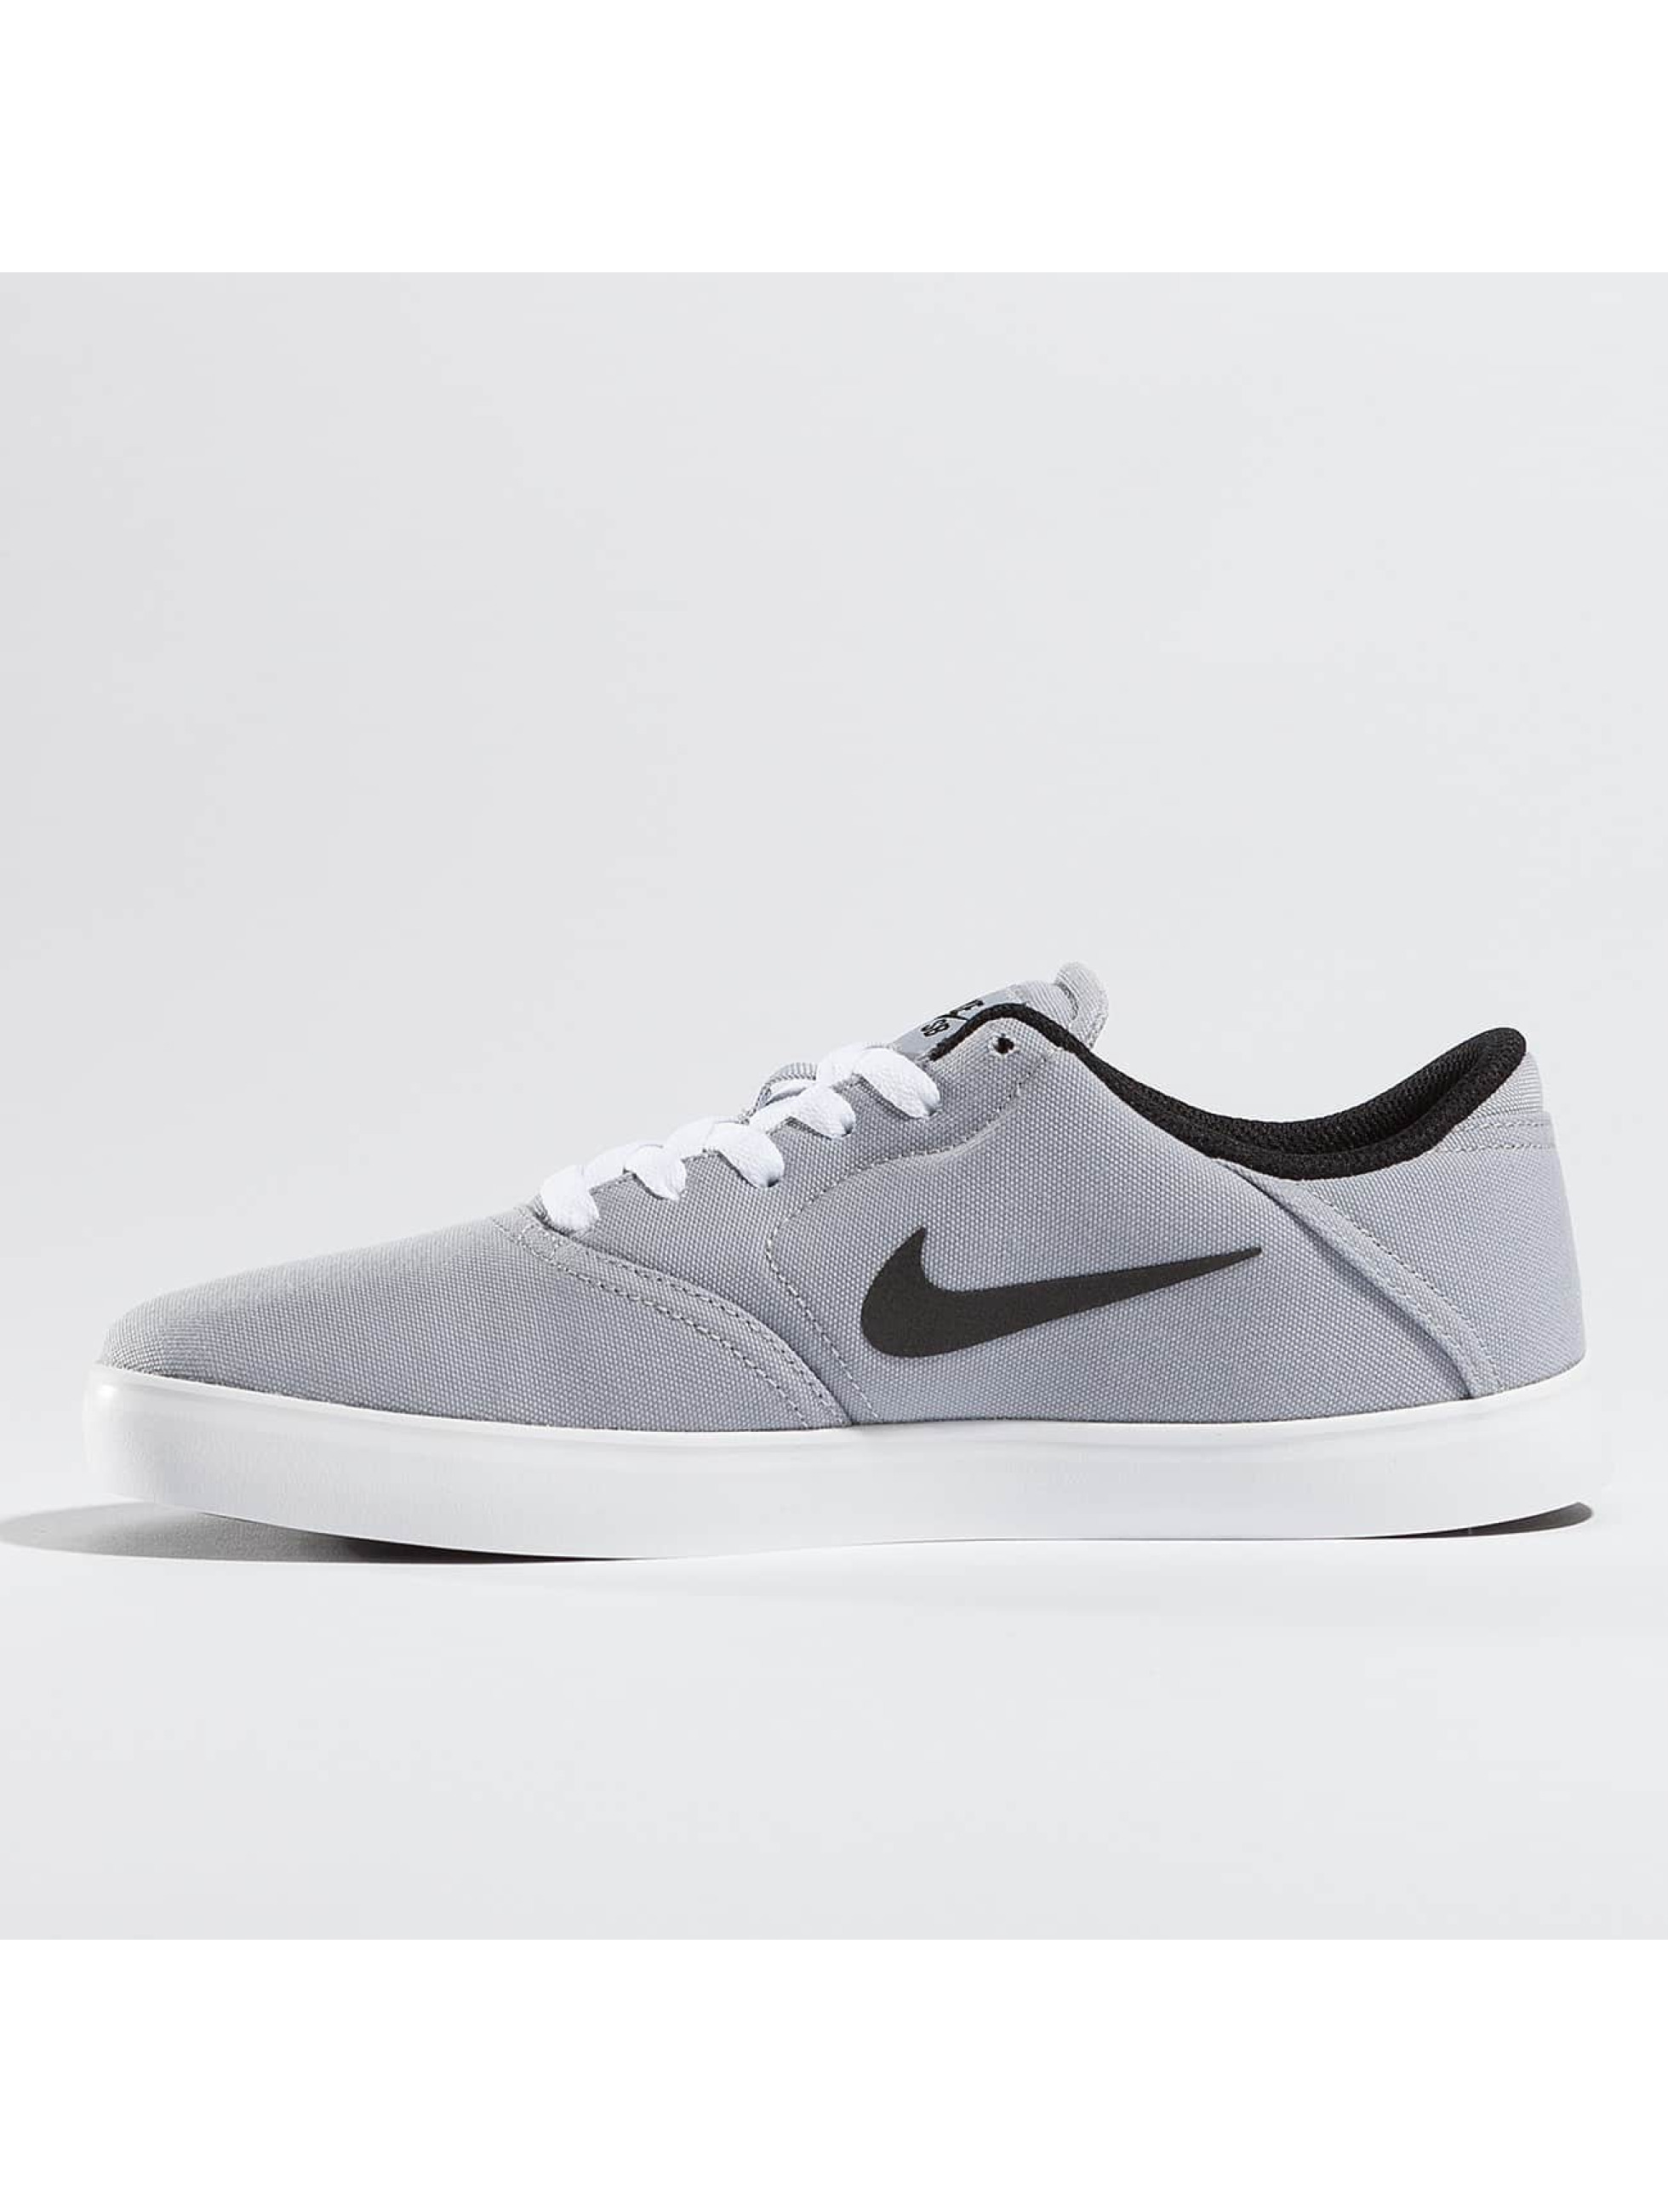 Nike SB Tøysko Check Canvas grå